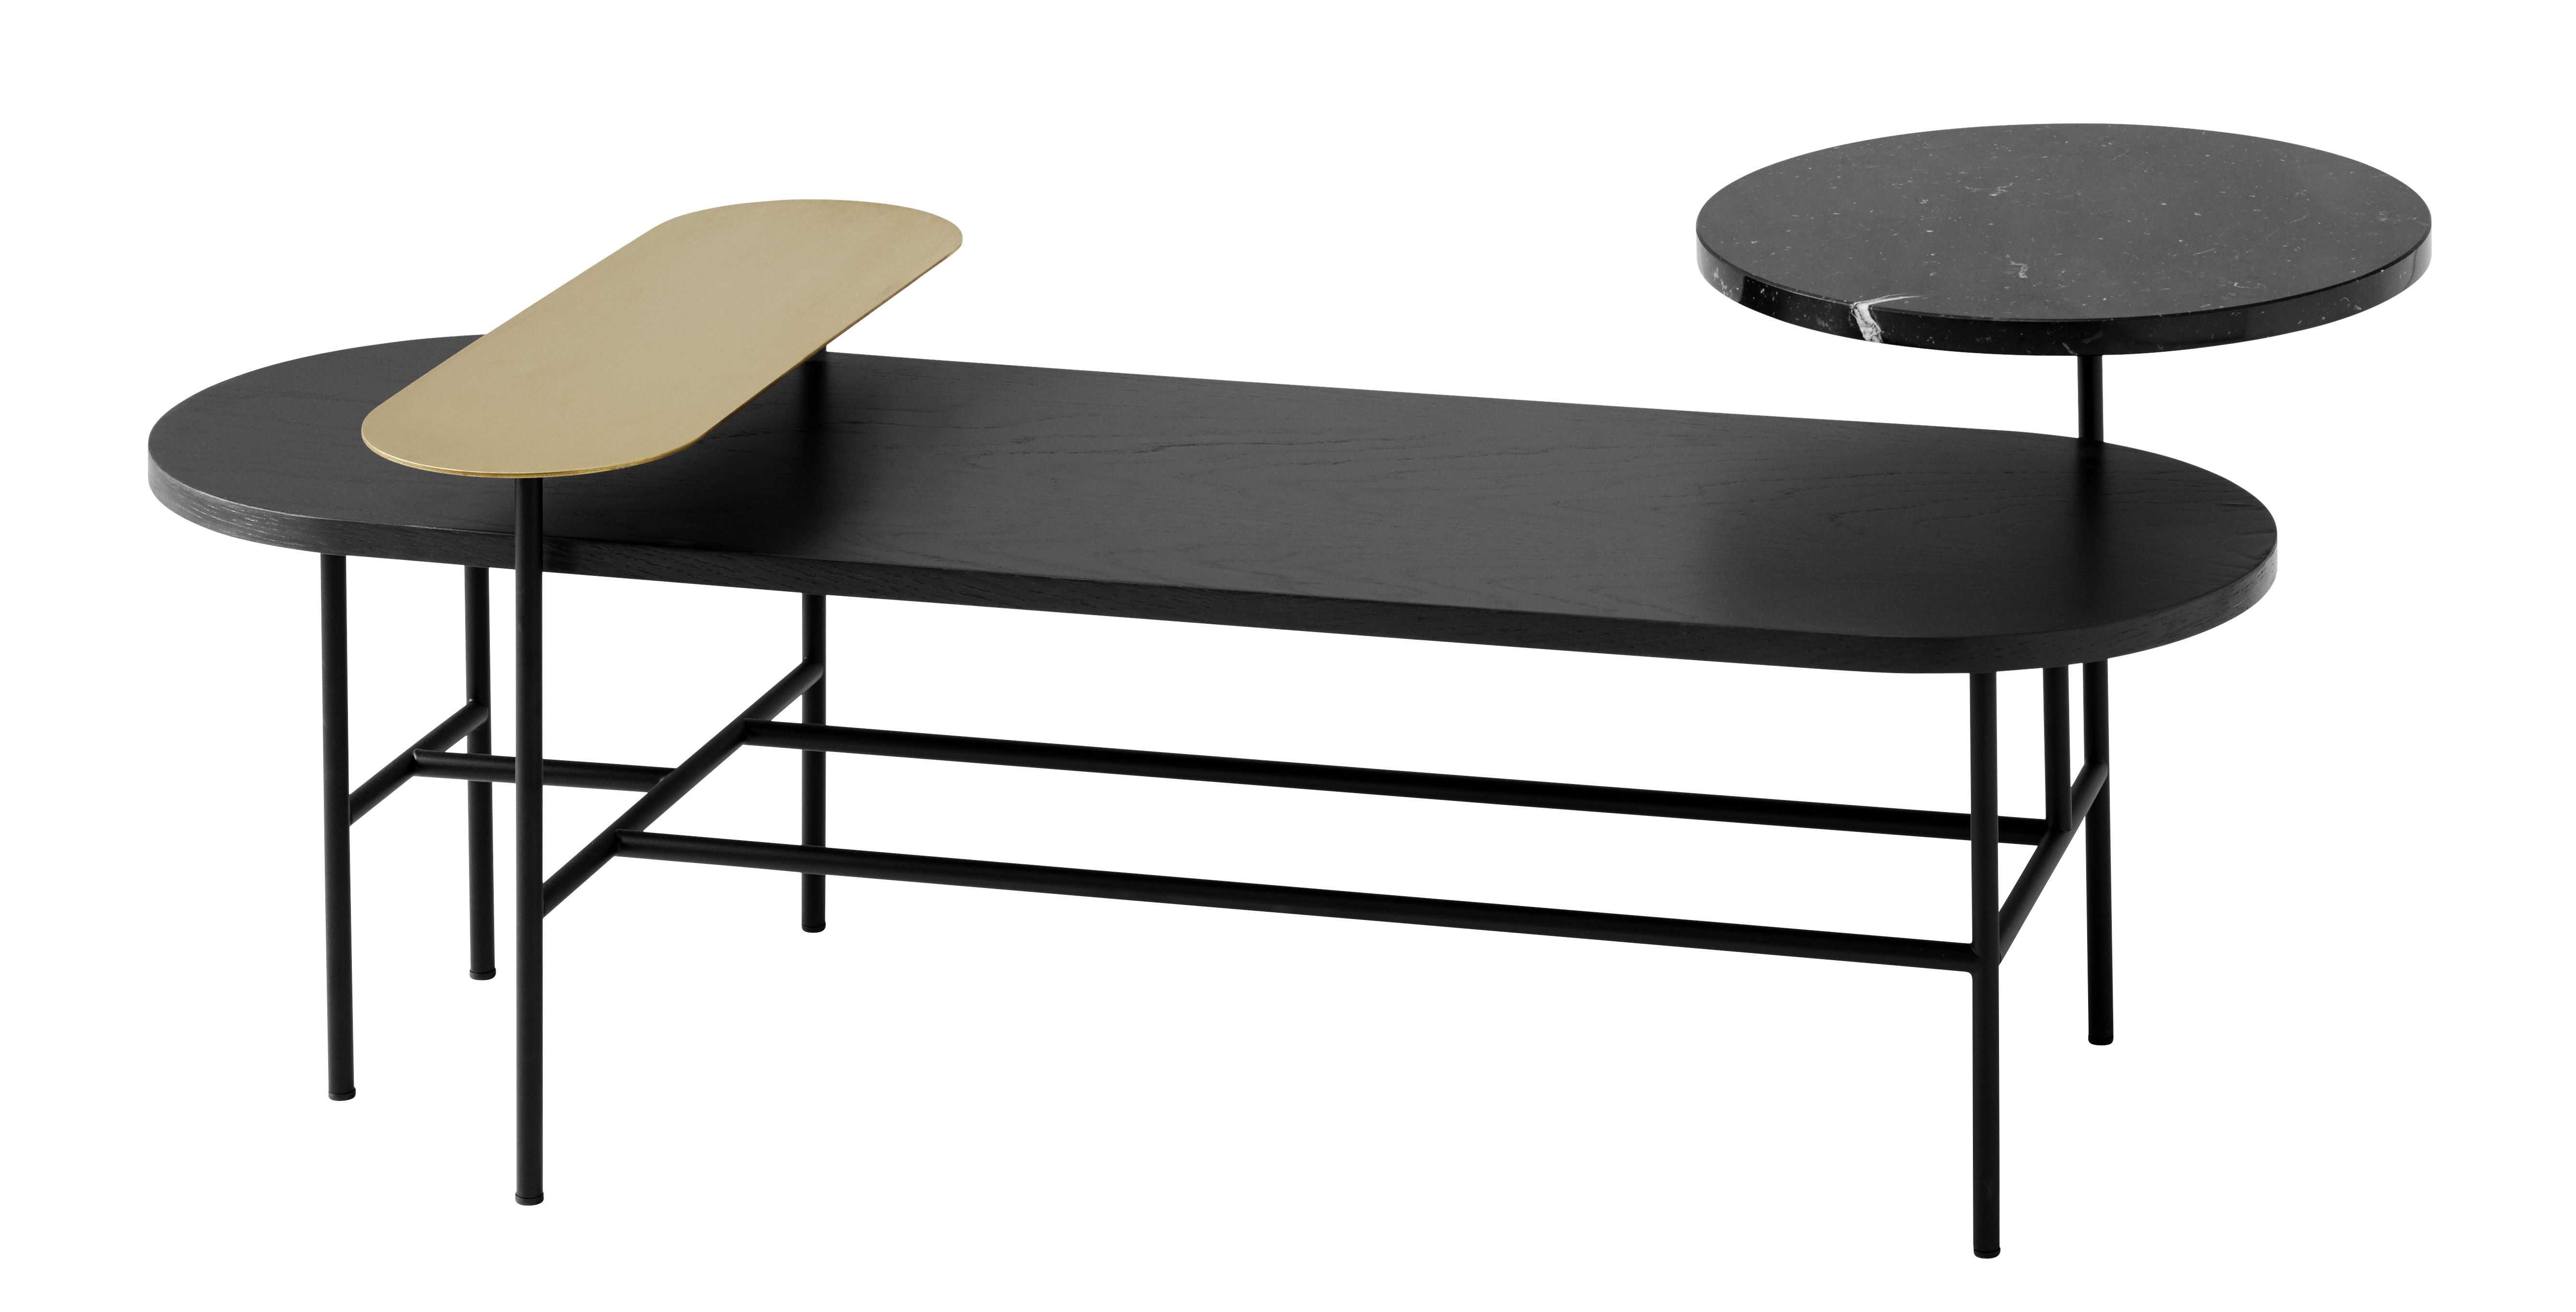 table basse palette jh7 3 plateaux noir or tradition made in design. Black Bedroom Furniture Sets. Home Design Ideas